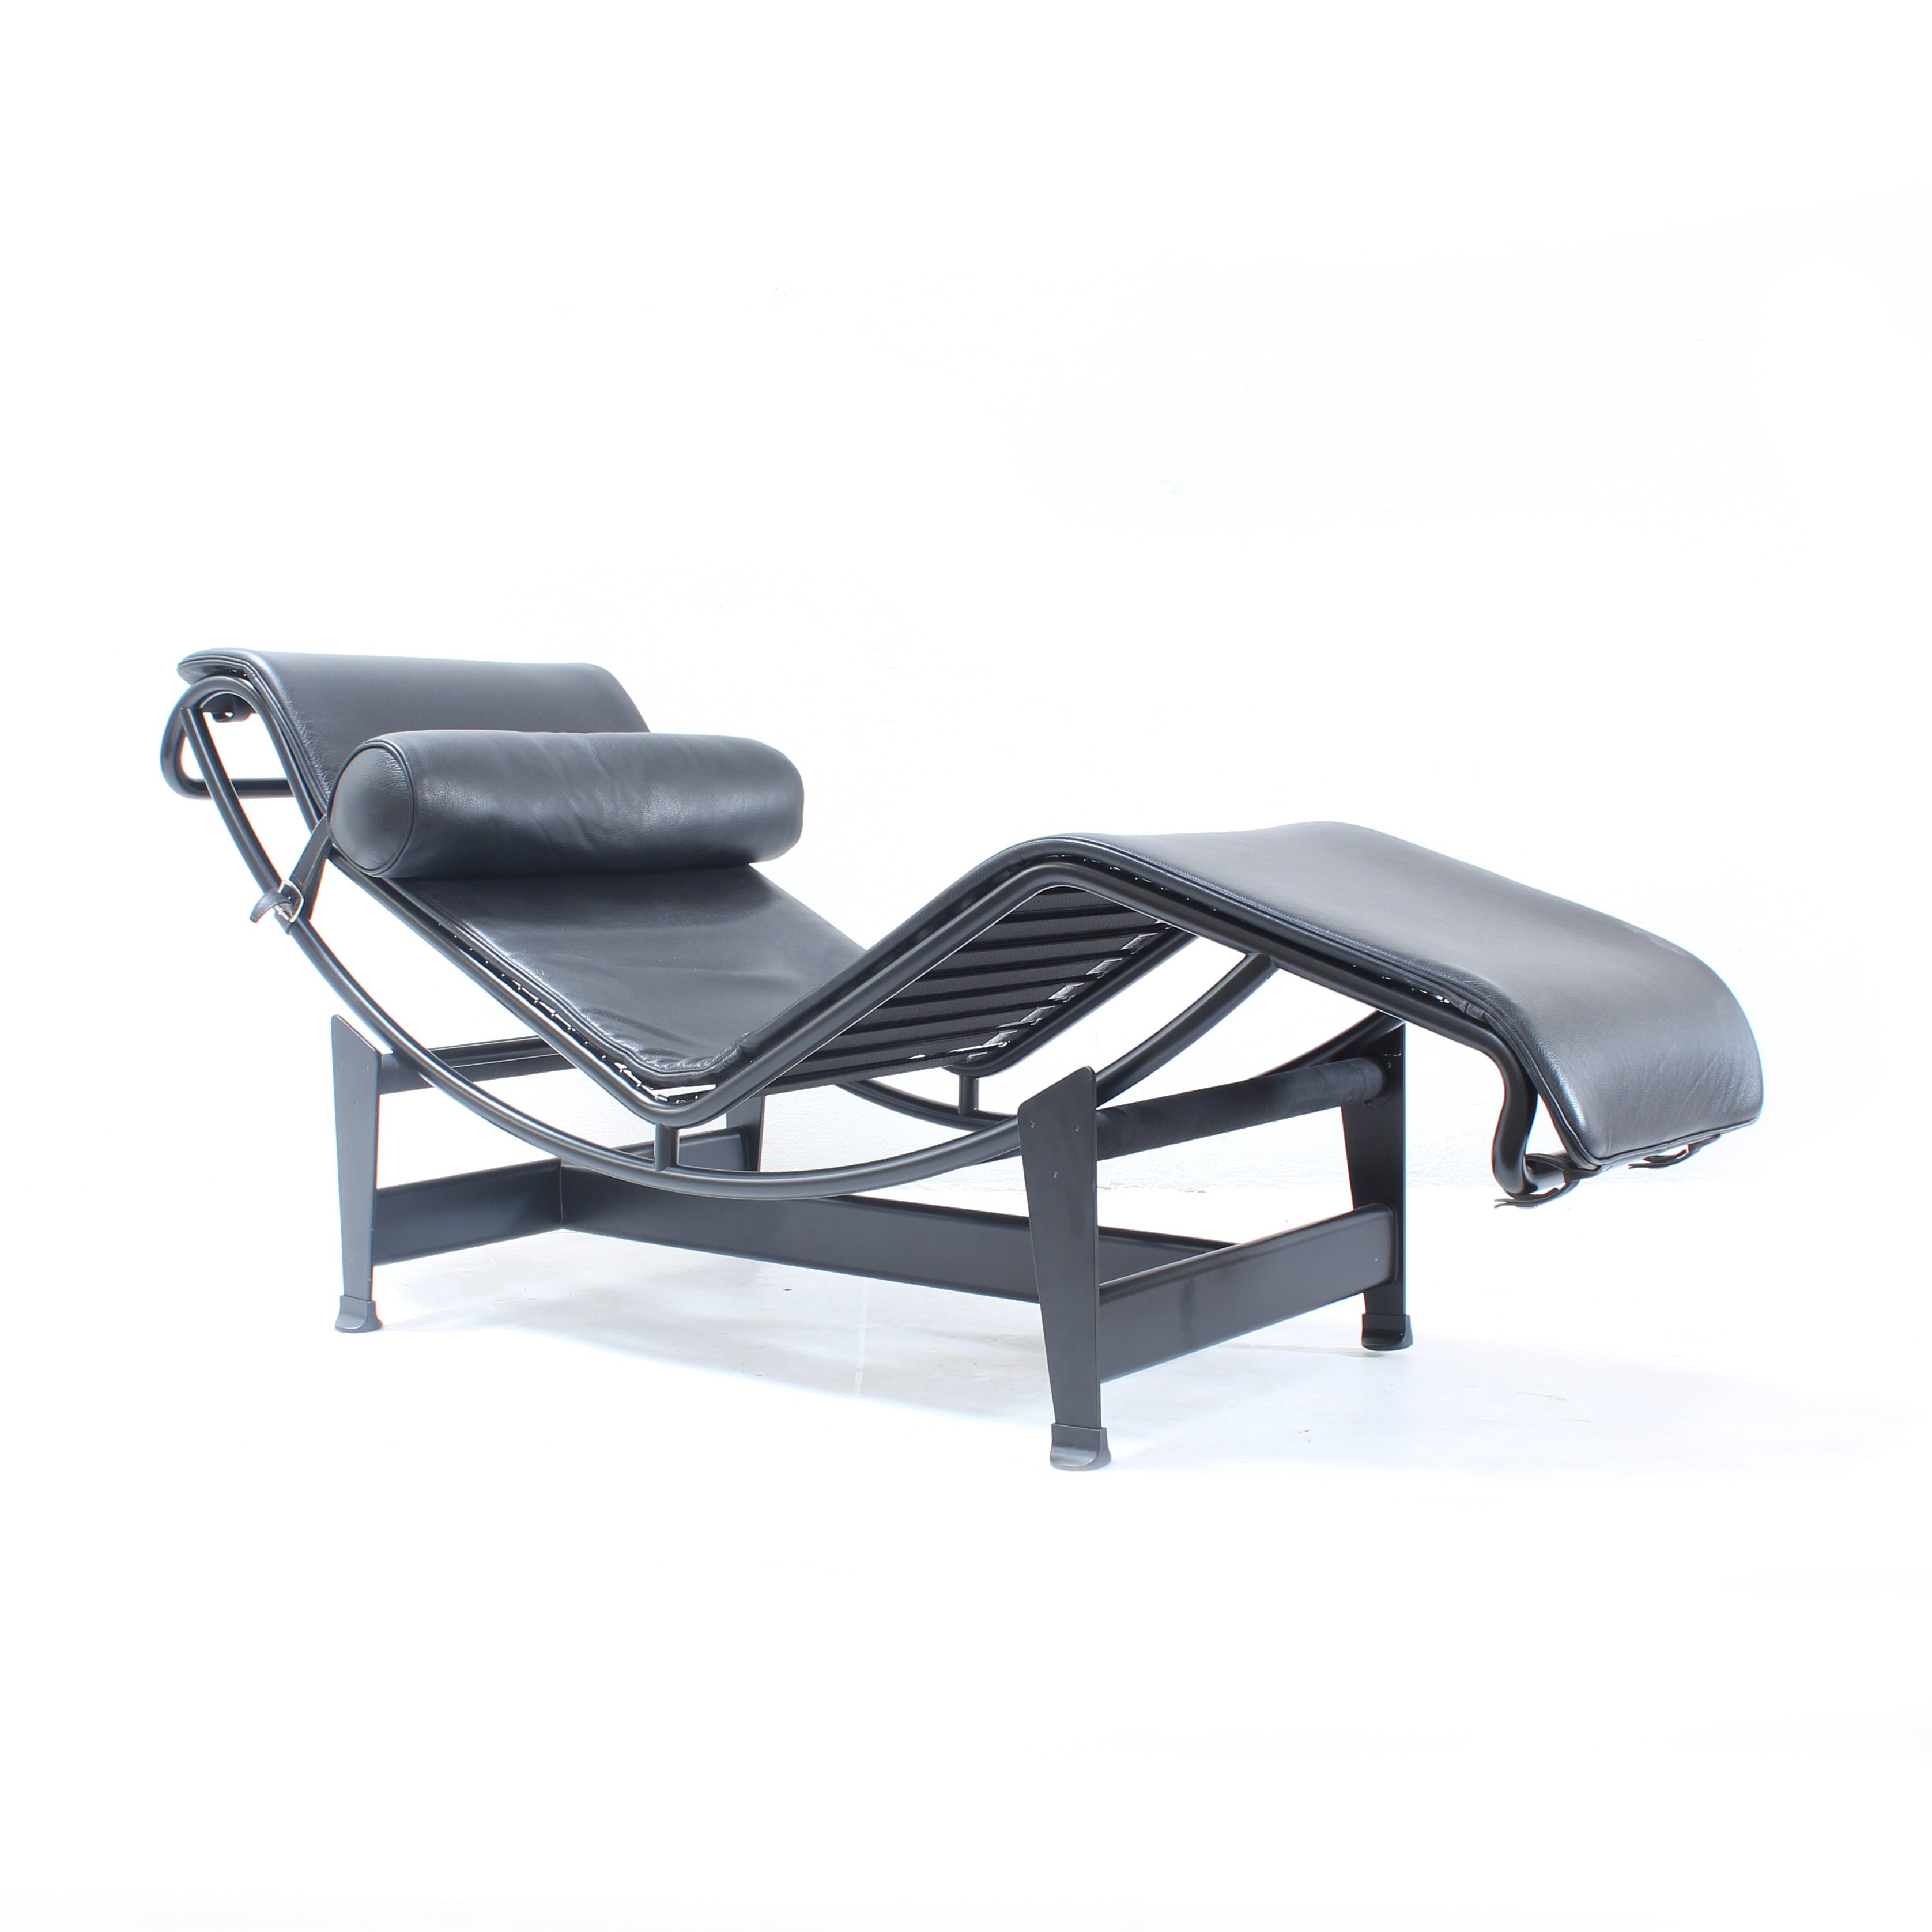 lc4 chaise longue rare full black edition lounge chair. Black Bedroom Furniture Sets. Home Design Ideas